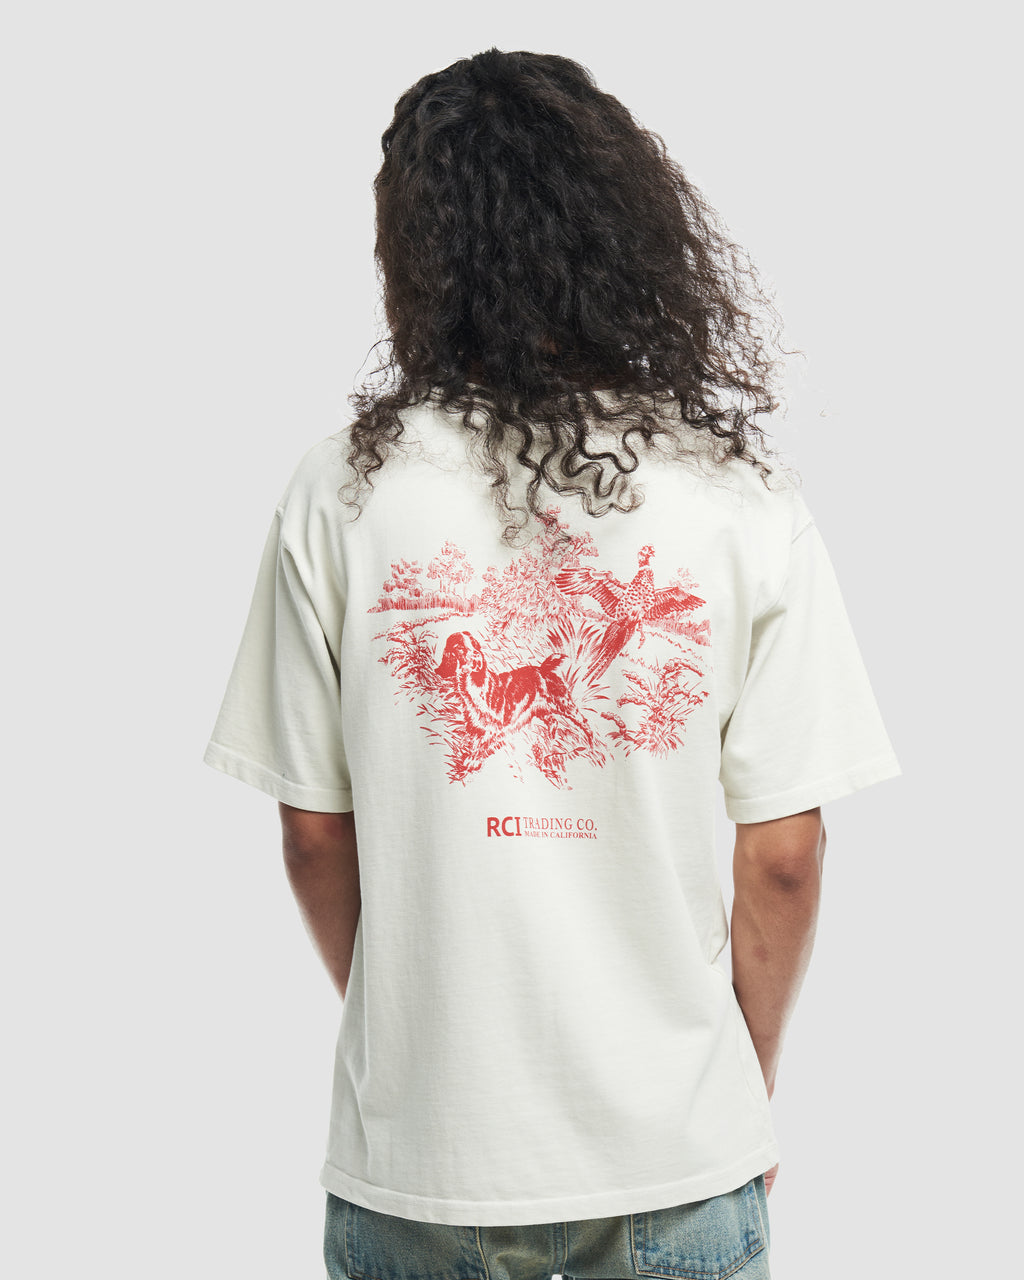 Hunting Division Tee Shirt in White